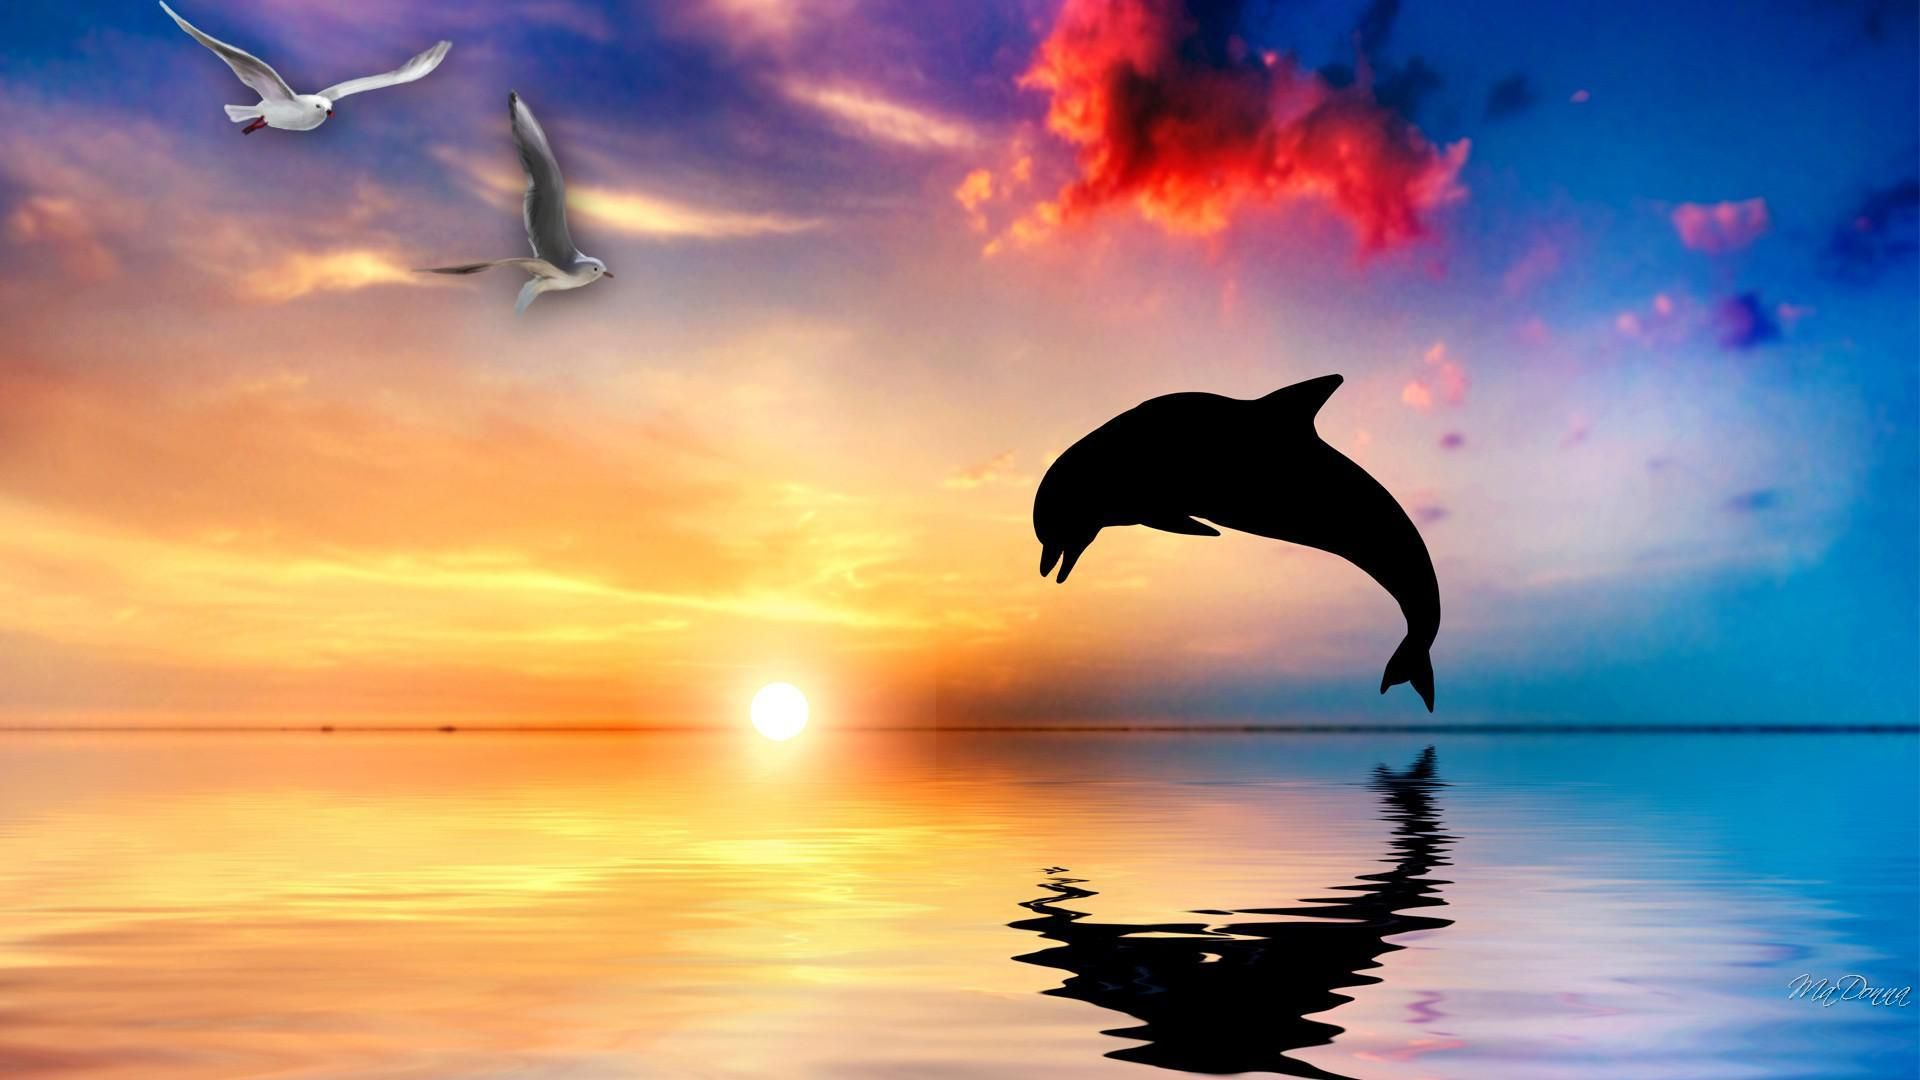 Dolphin Wallpapers, Images, Photos, Pictures & Pics #dolphin ...